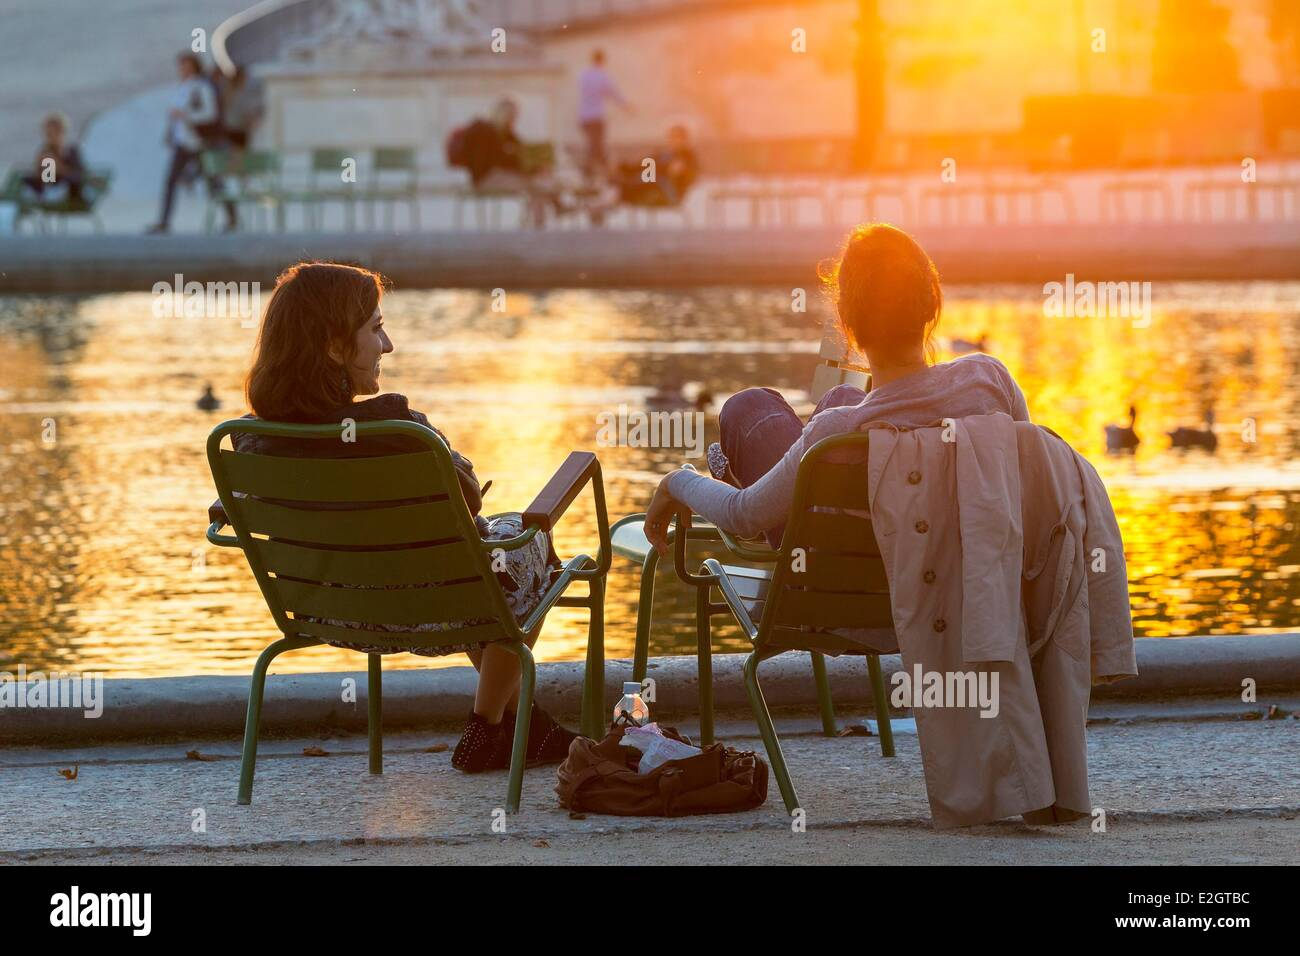 France Paris Jardin des Tuileries at Sunset - Stock Image